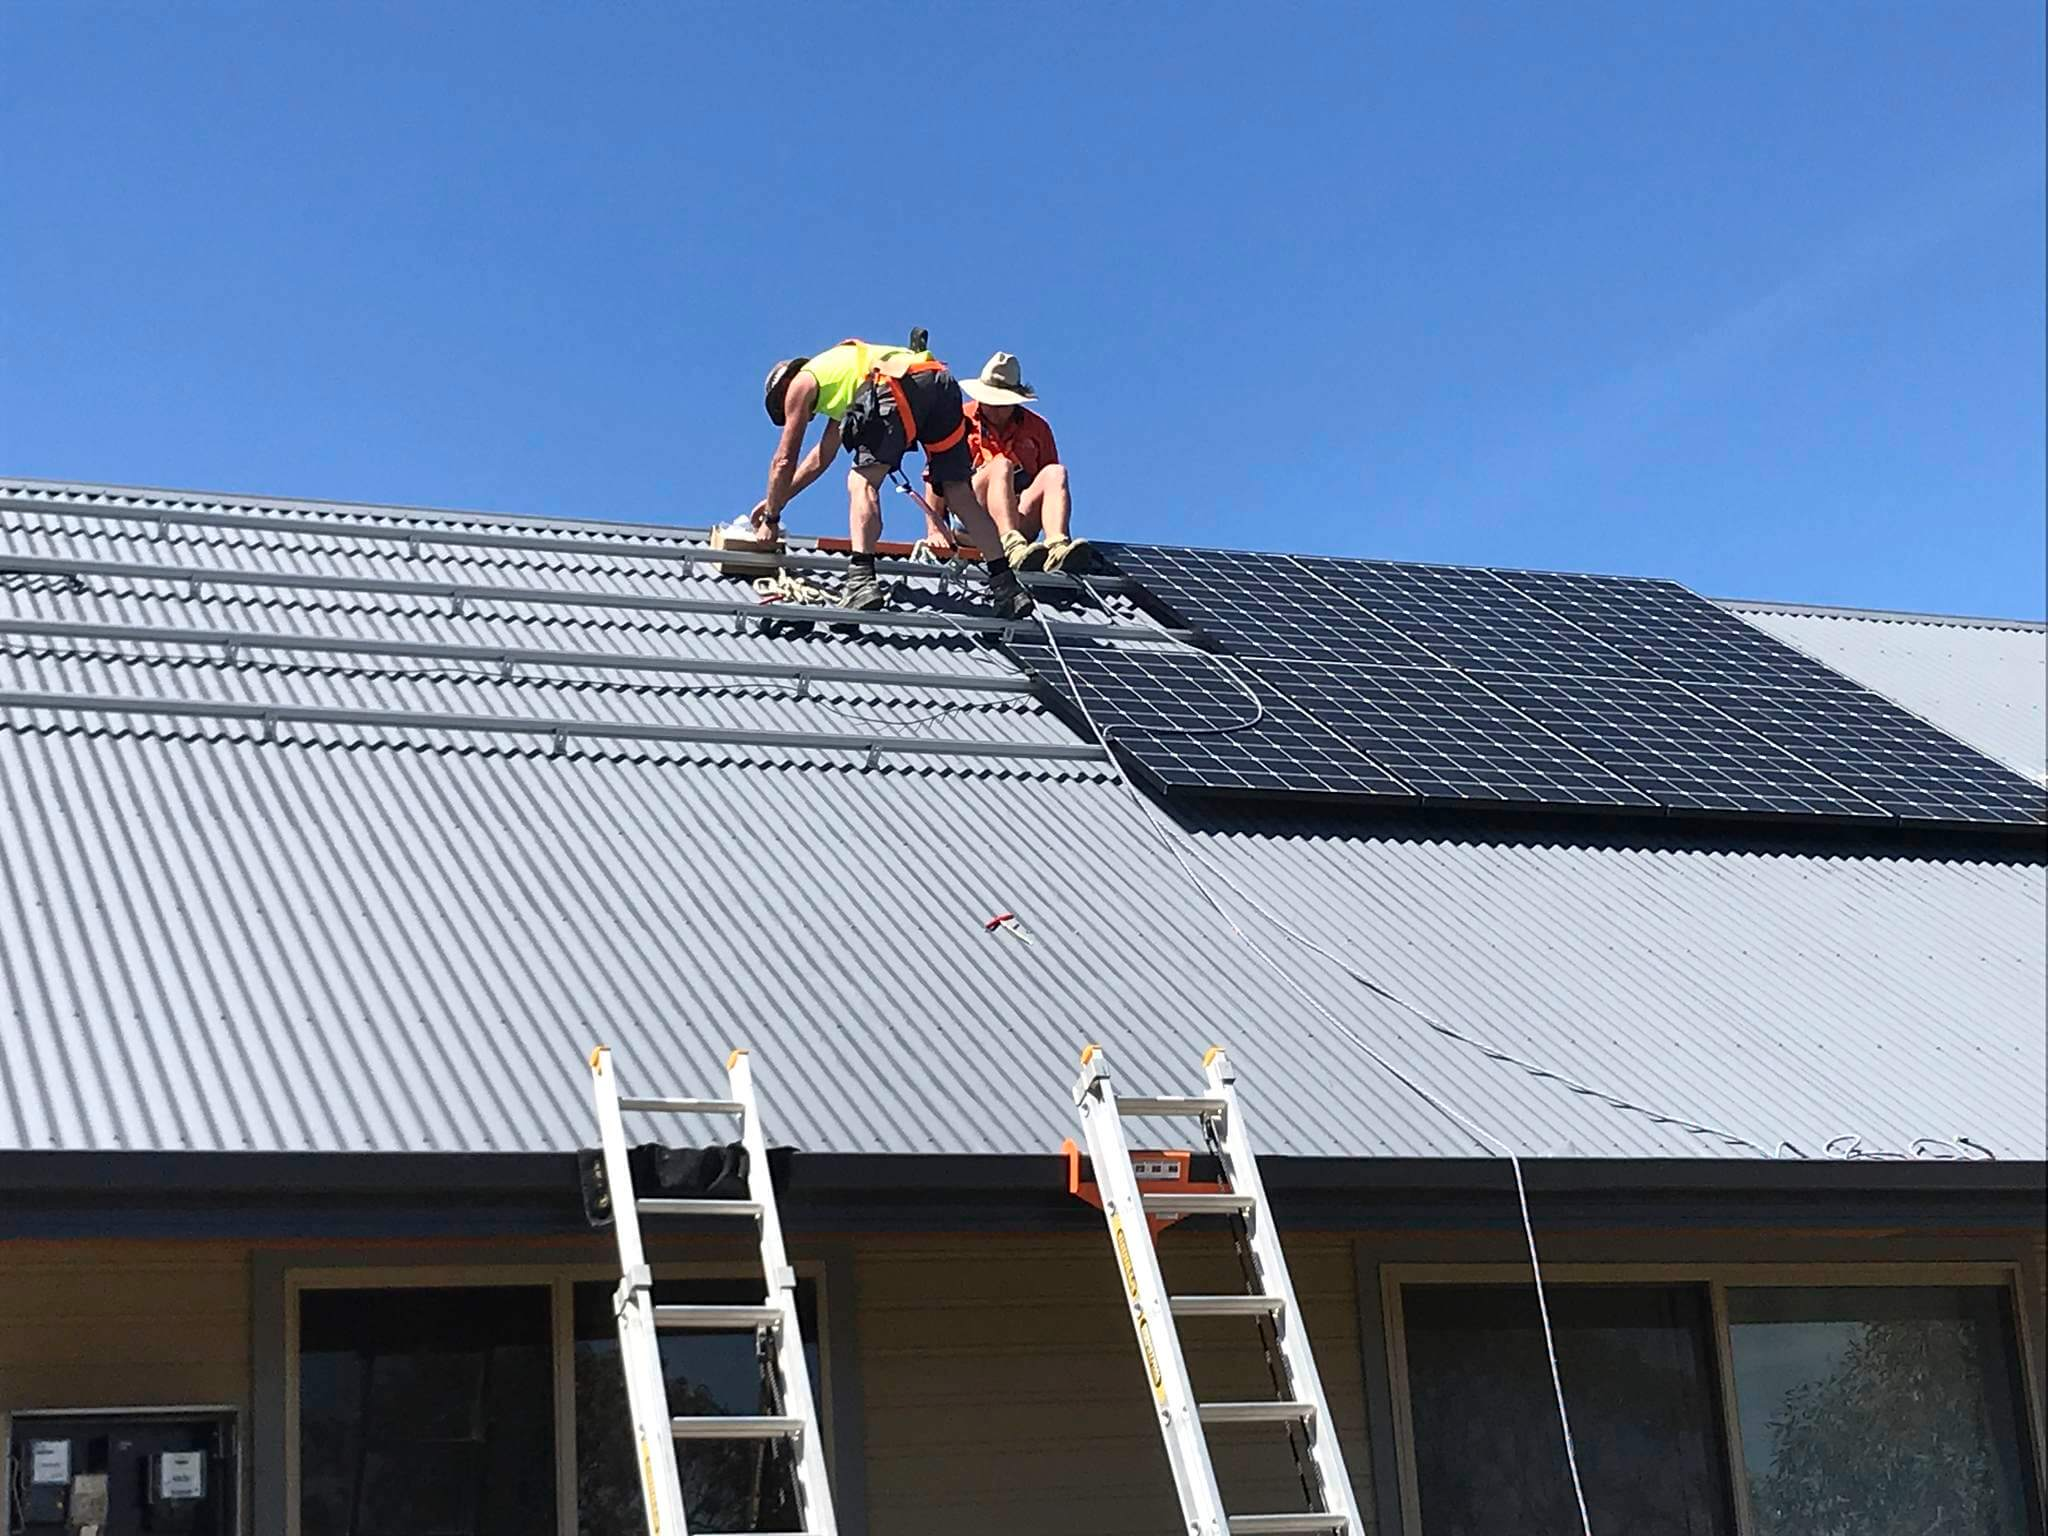 Snowy Regional Solar - Installation on a 36-degree roof pitch